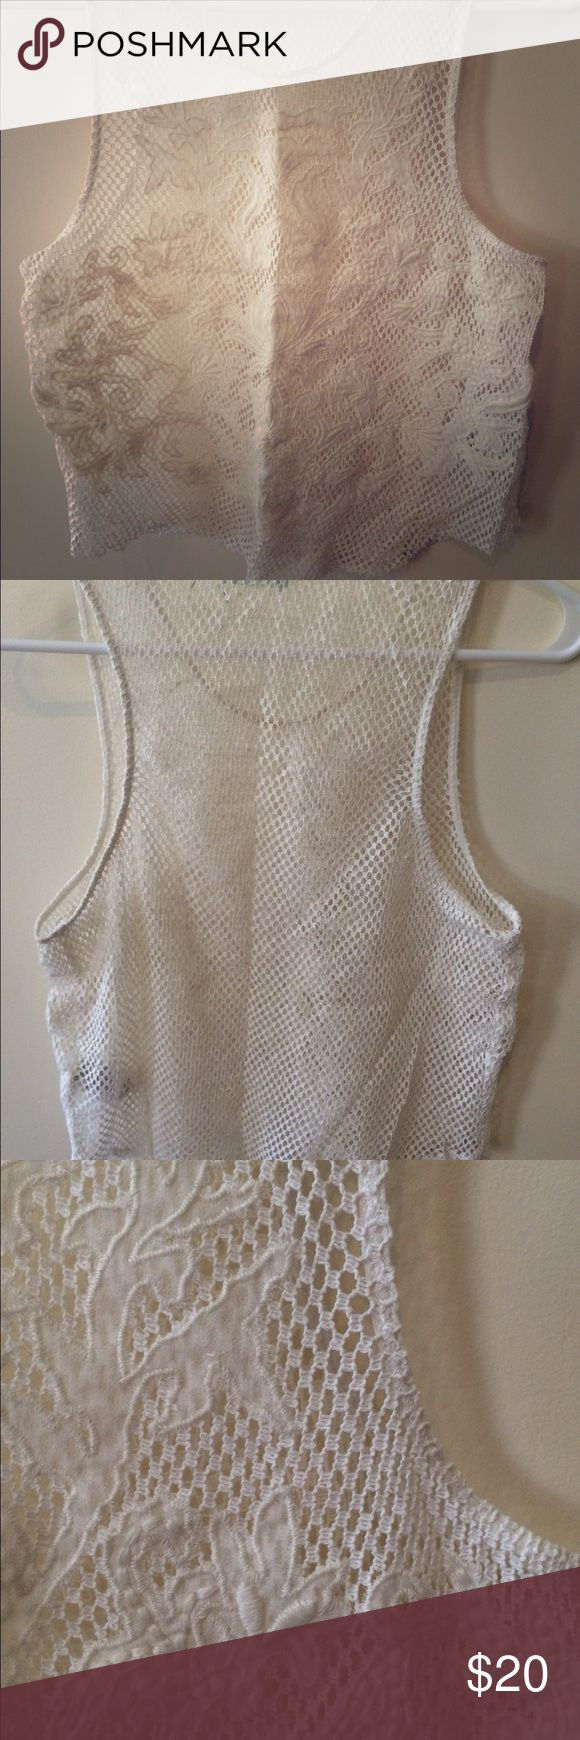 Kimchi Blue nwot lace crop top size M Cream colored net sleeveless crop top with lace embroidered details... Would look so cute over a bandeau or swimsuit top. Bought new from UO last spring. Kimchi Blue Tops Crop Tops